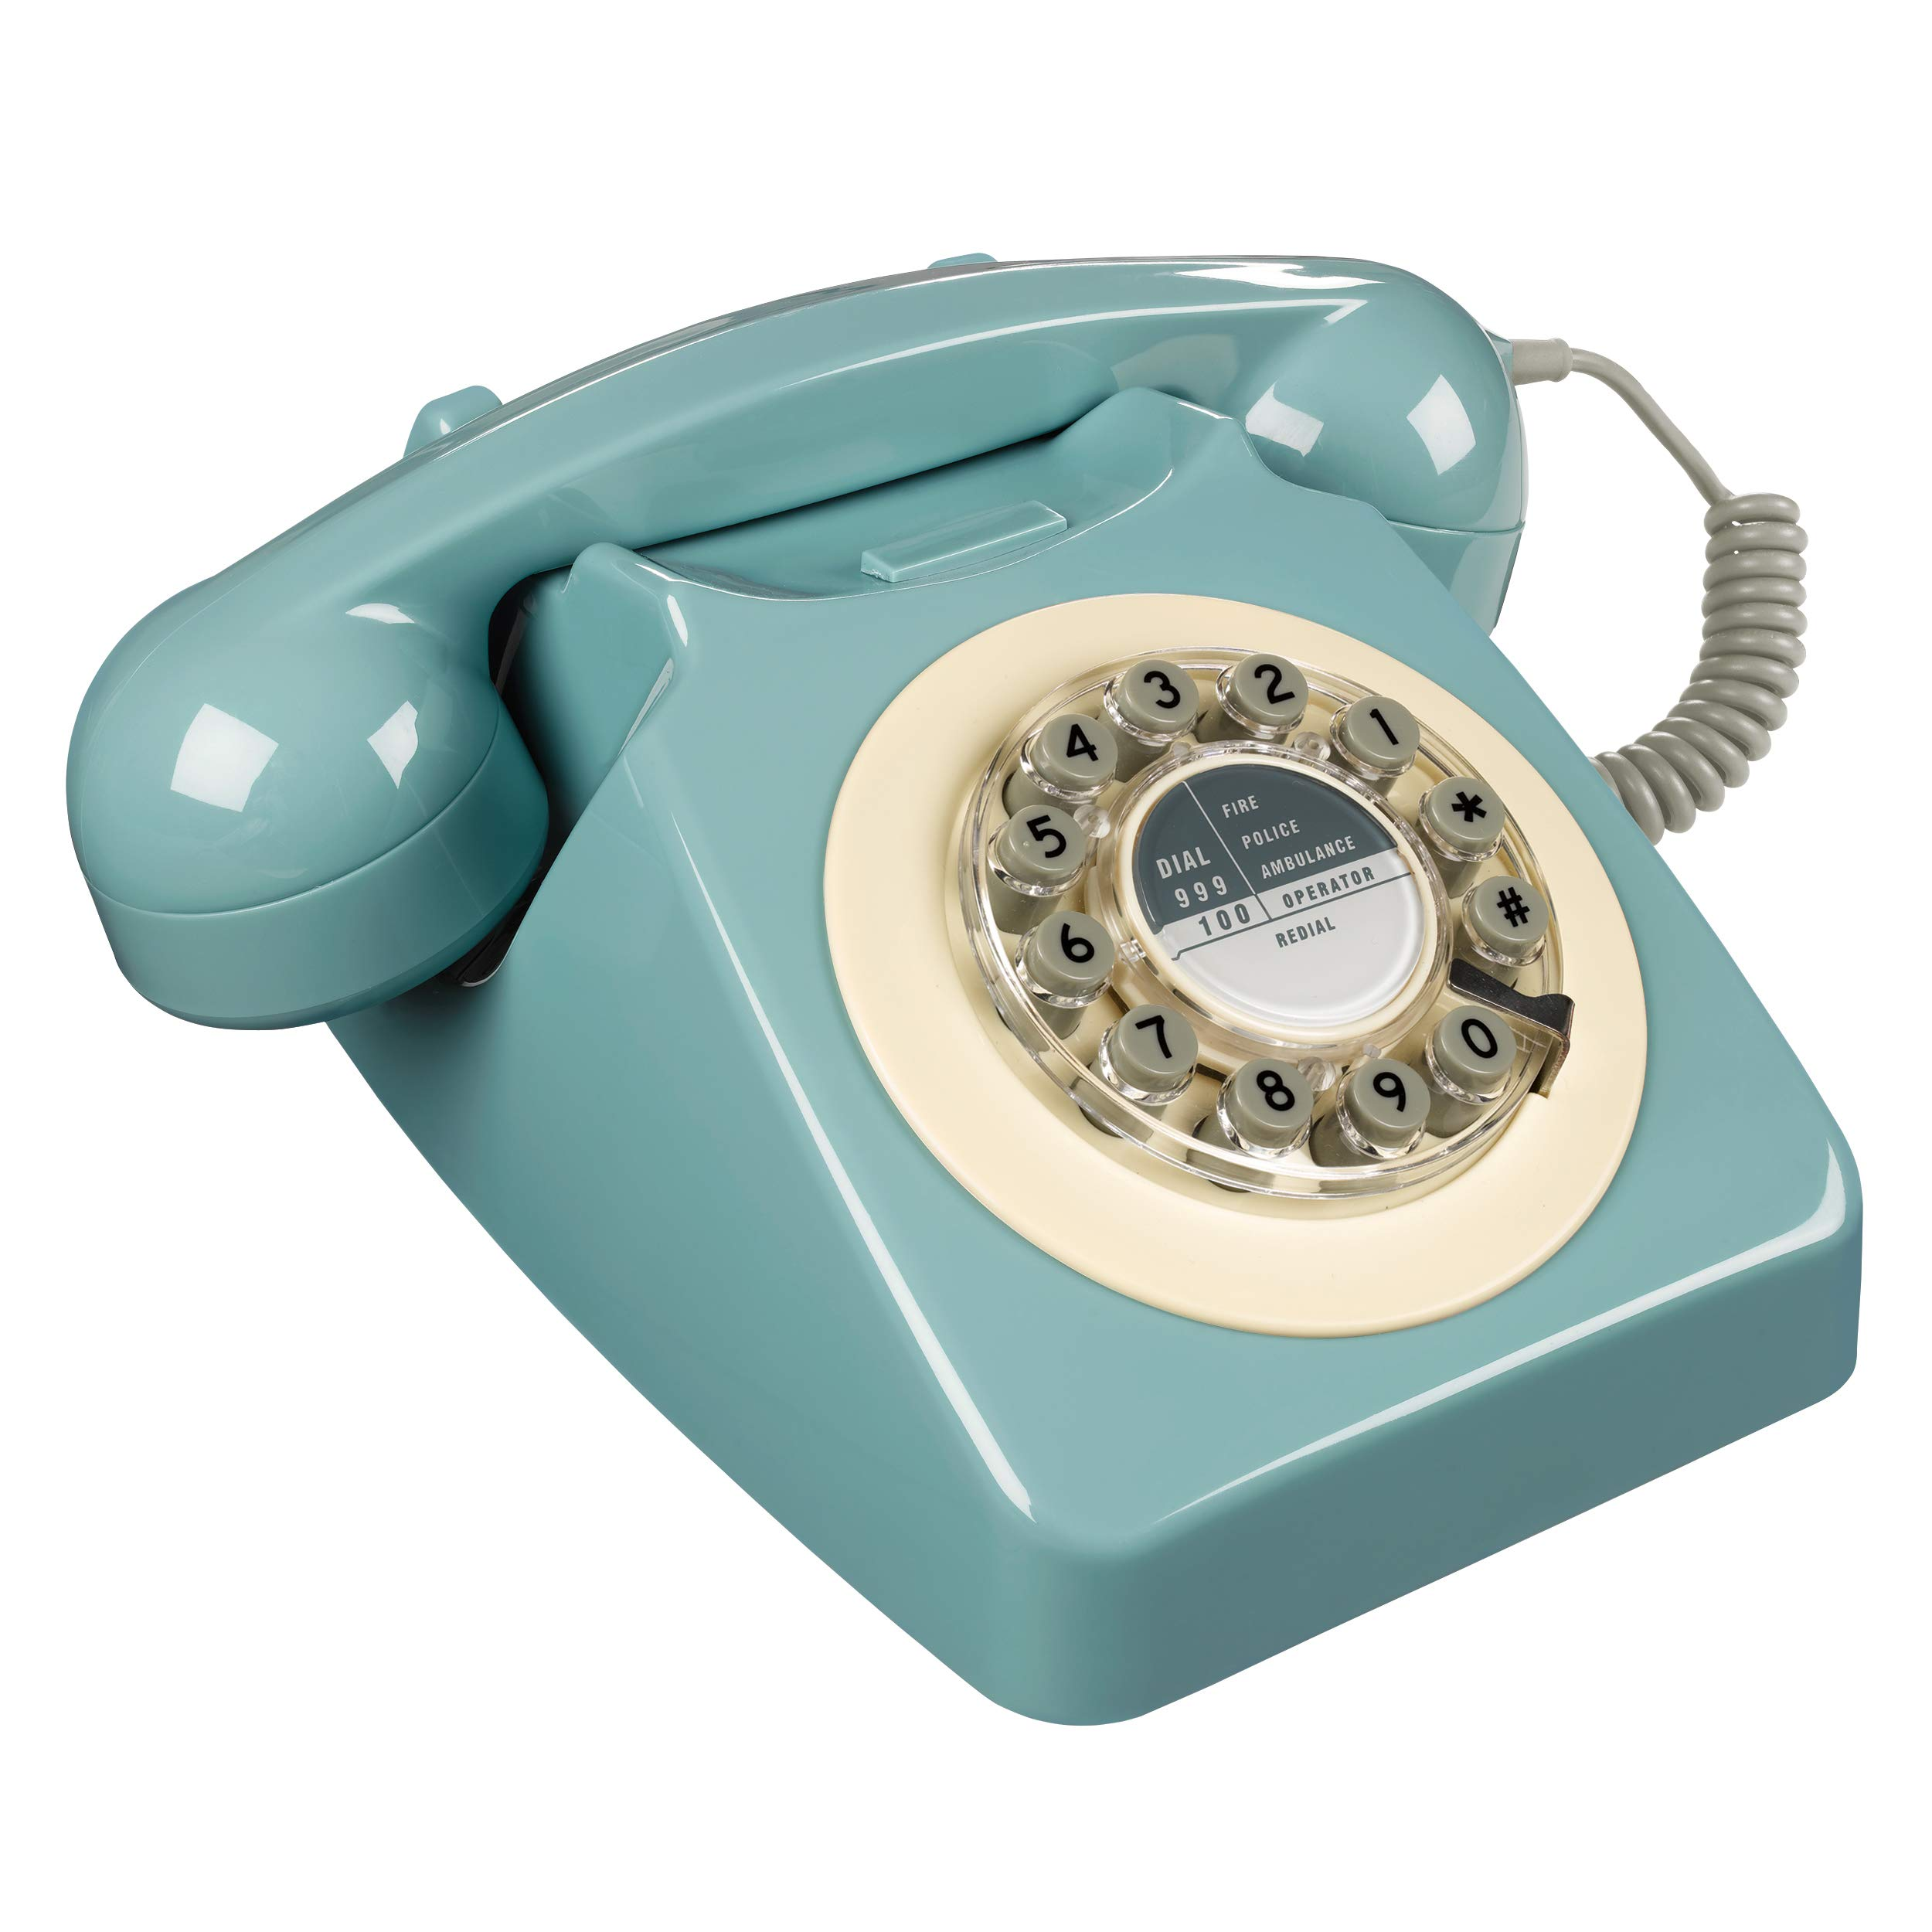 Wild Wood Rotary Design Retro Landline Phone for Home, French Blue by Wild Wood